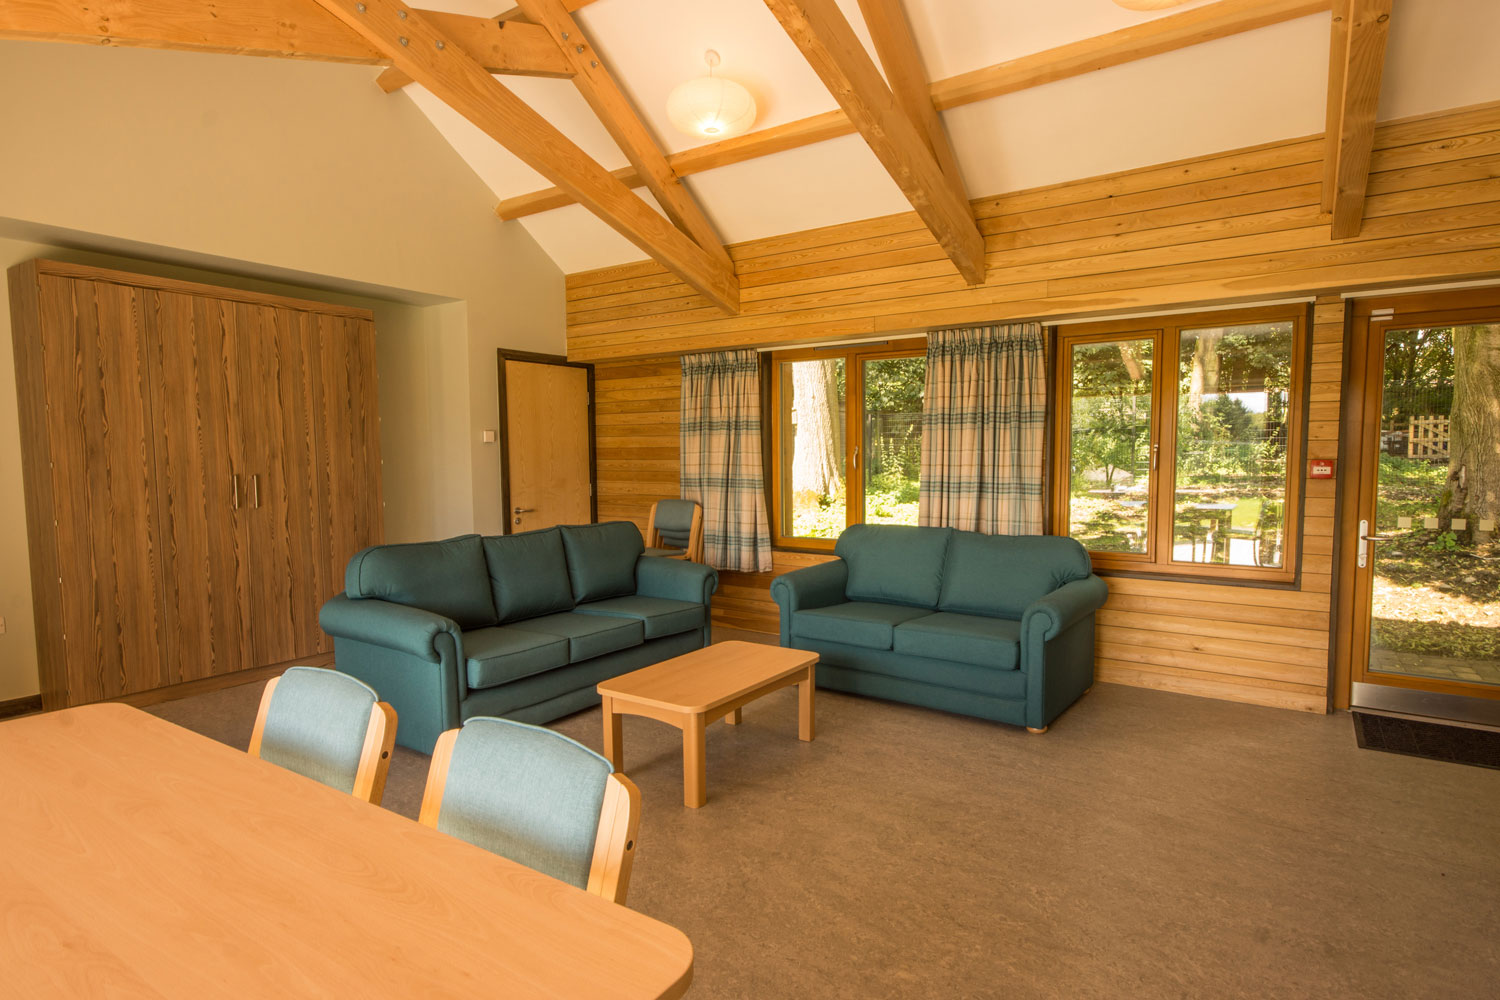 Thornbridge Outdoors, Woodlands, Lounge and Dining Room